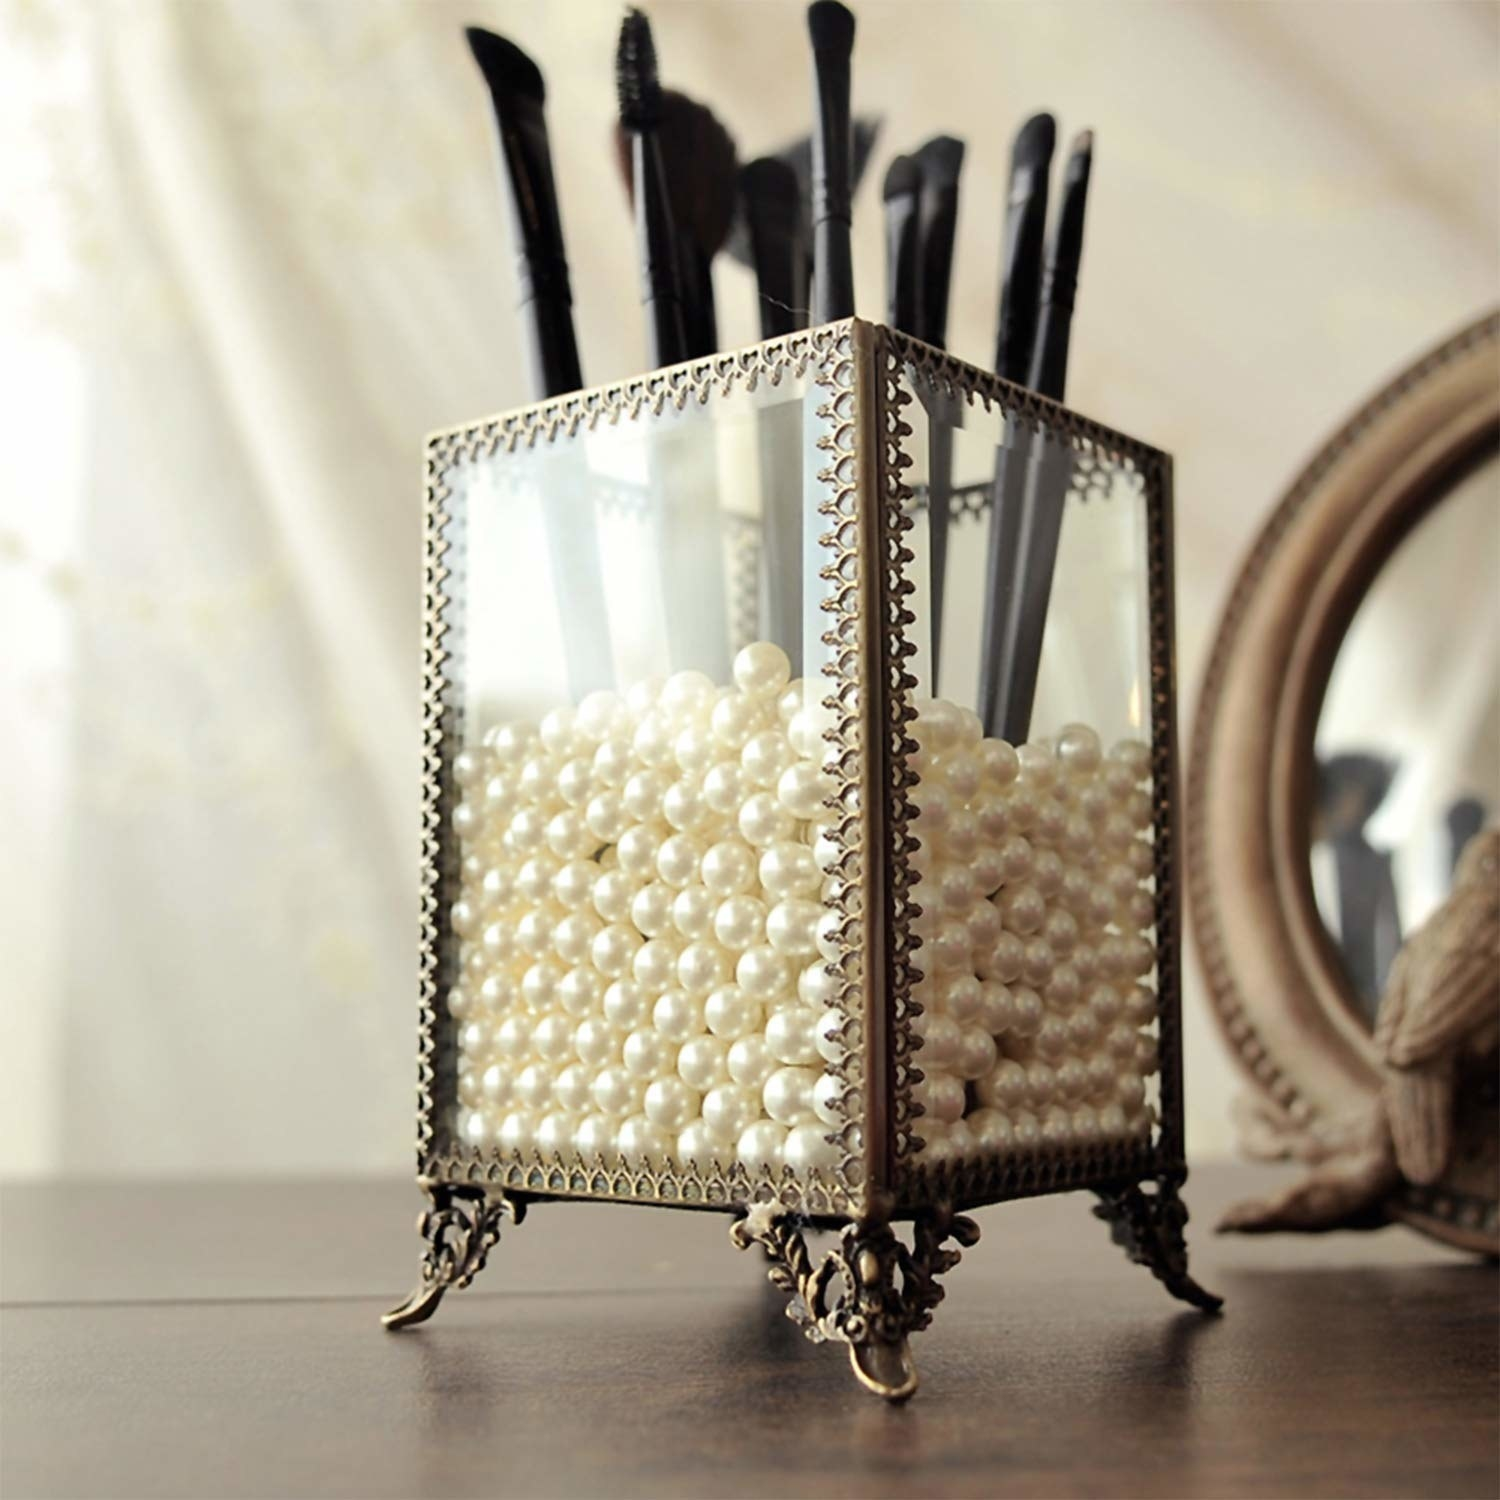 brass and glass container with pearls and makeup brushes